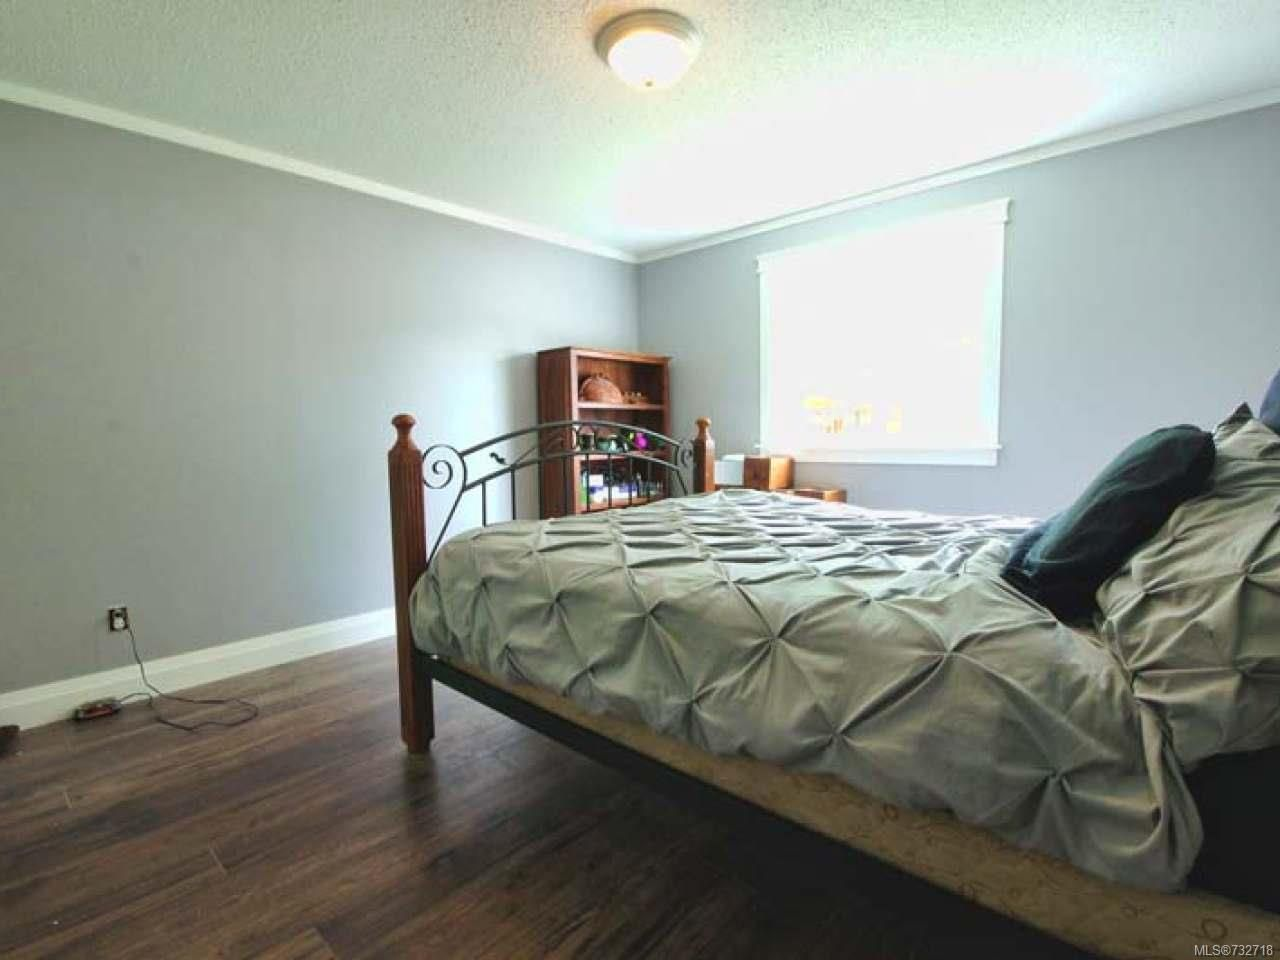 Photo 13: Photos: 921 POPLAR Way in ERRINGTON: PQ Errington/Coombs/Hilliers Manufactured Home for sale (Parksville/Qualicum)  : MLS®# 732718